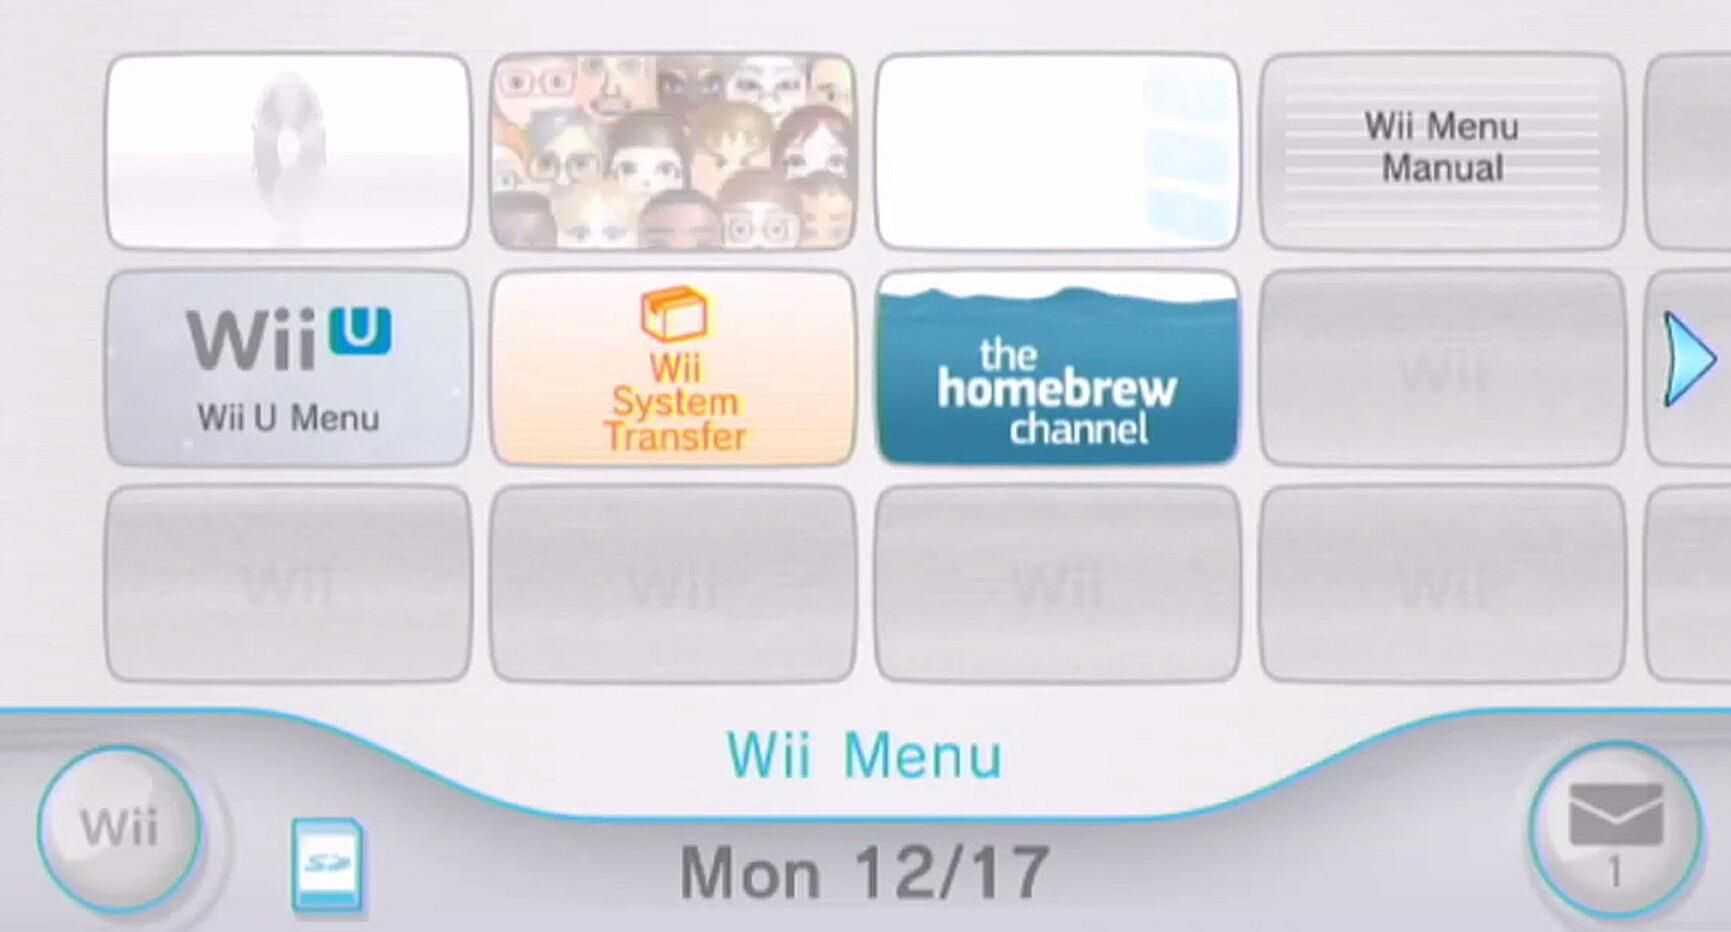 Install the Homebrew Channel to Wii U's Wii Mode